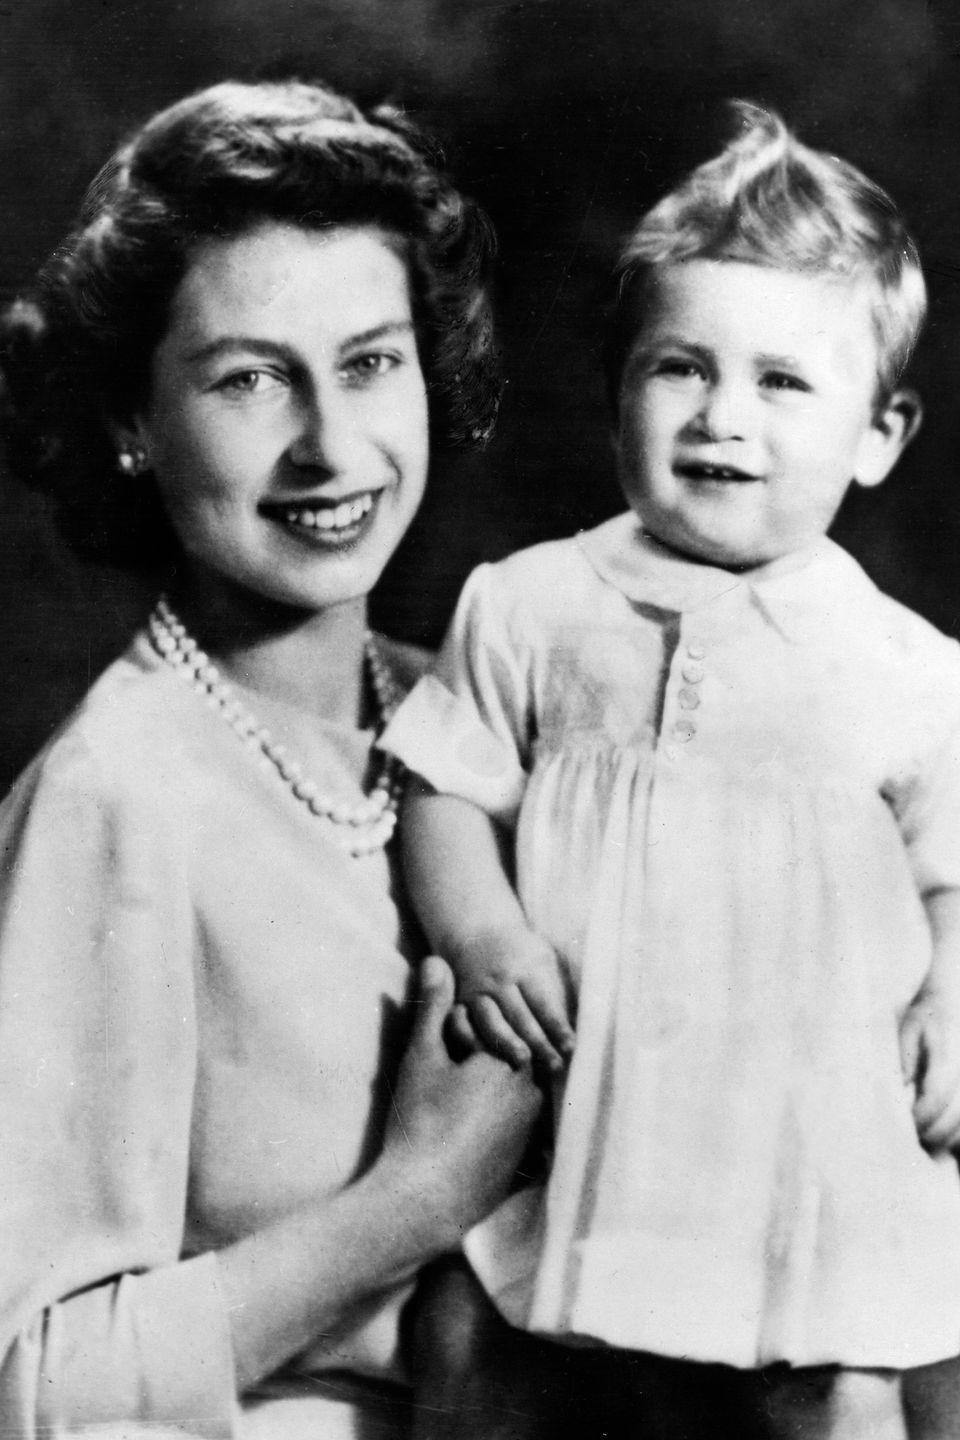 <p>The queen looked thrilled while she posed with her son Prince Charles.</p>